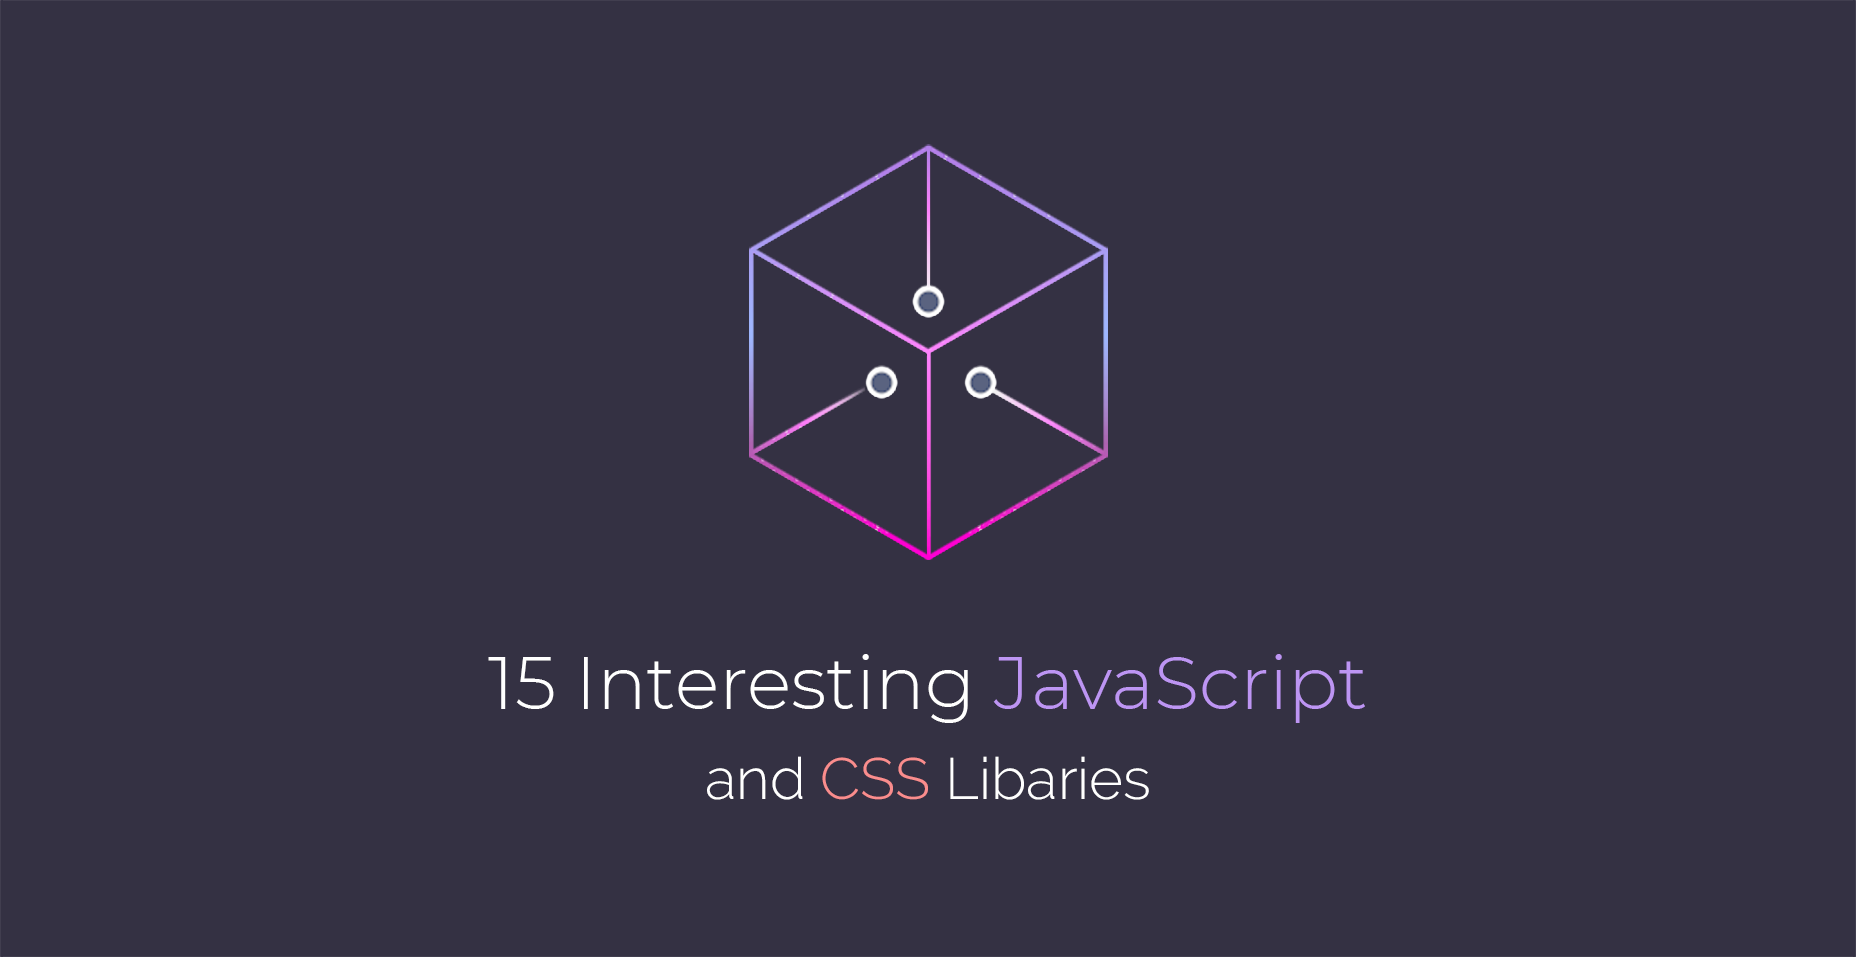 15 Interesting JavaScript and CSS Libraries for February 2018